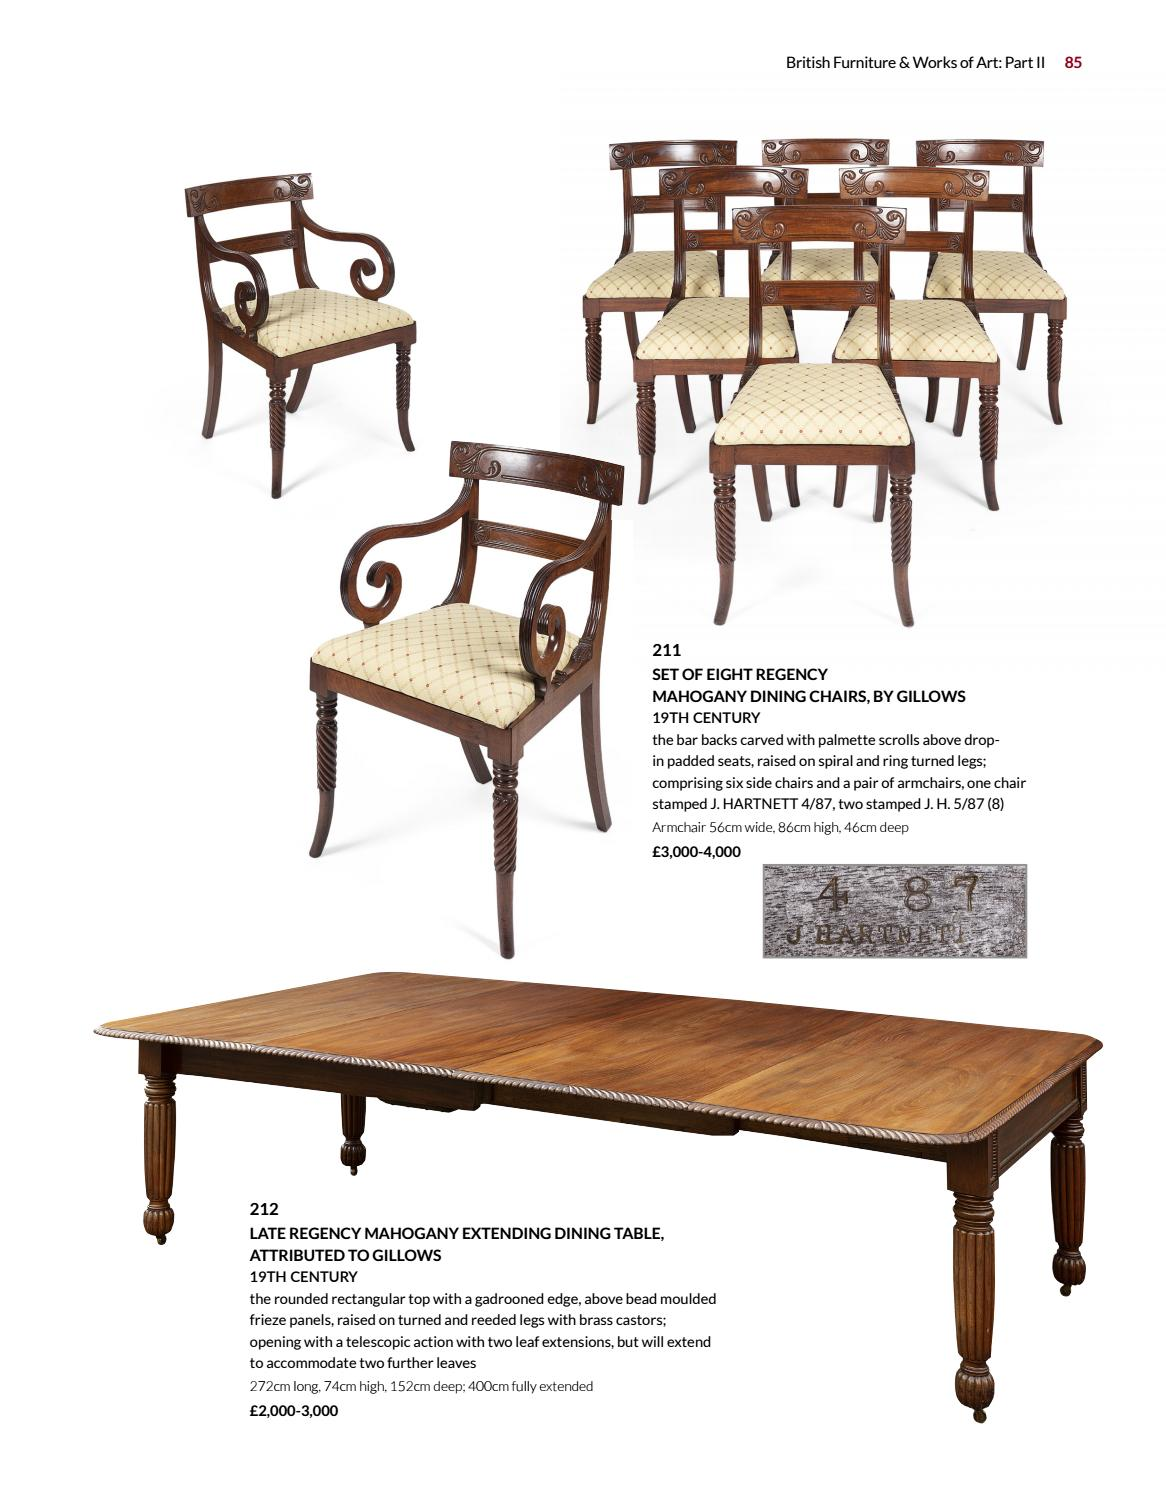 Magnificent Five Centuries Furniture Paintings Works Of Art From Gamerscity Chair Design For Home Gamerscityorg